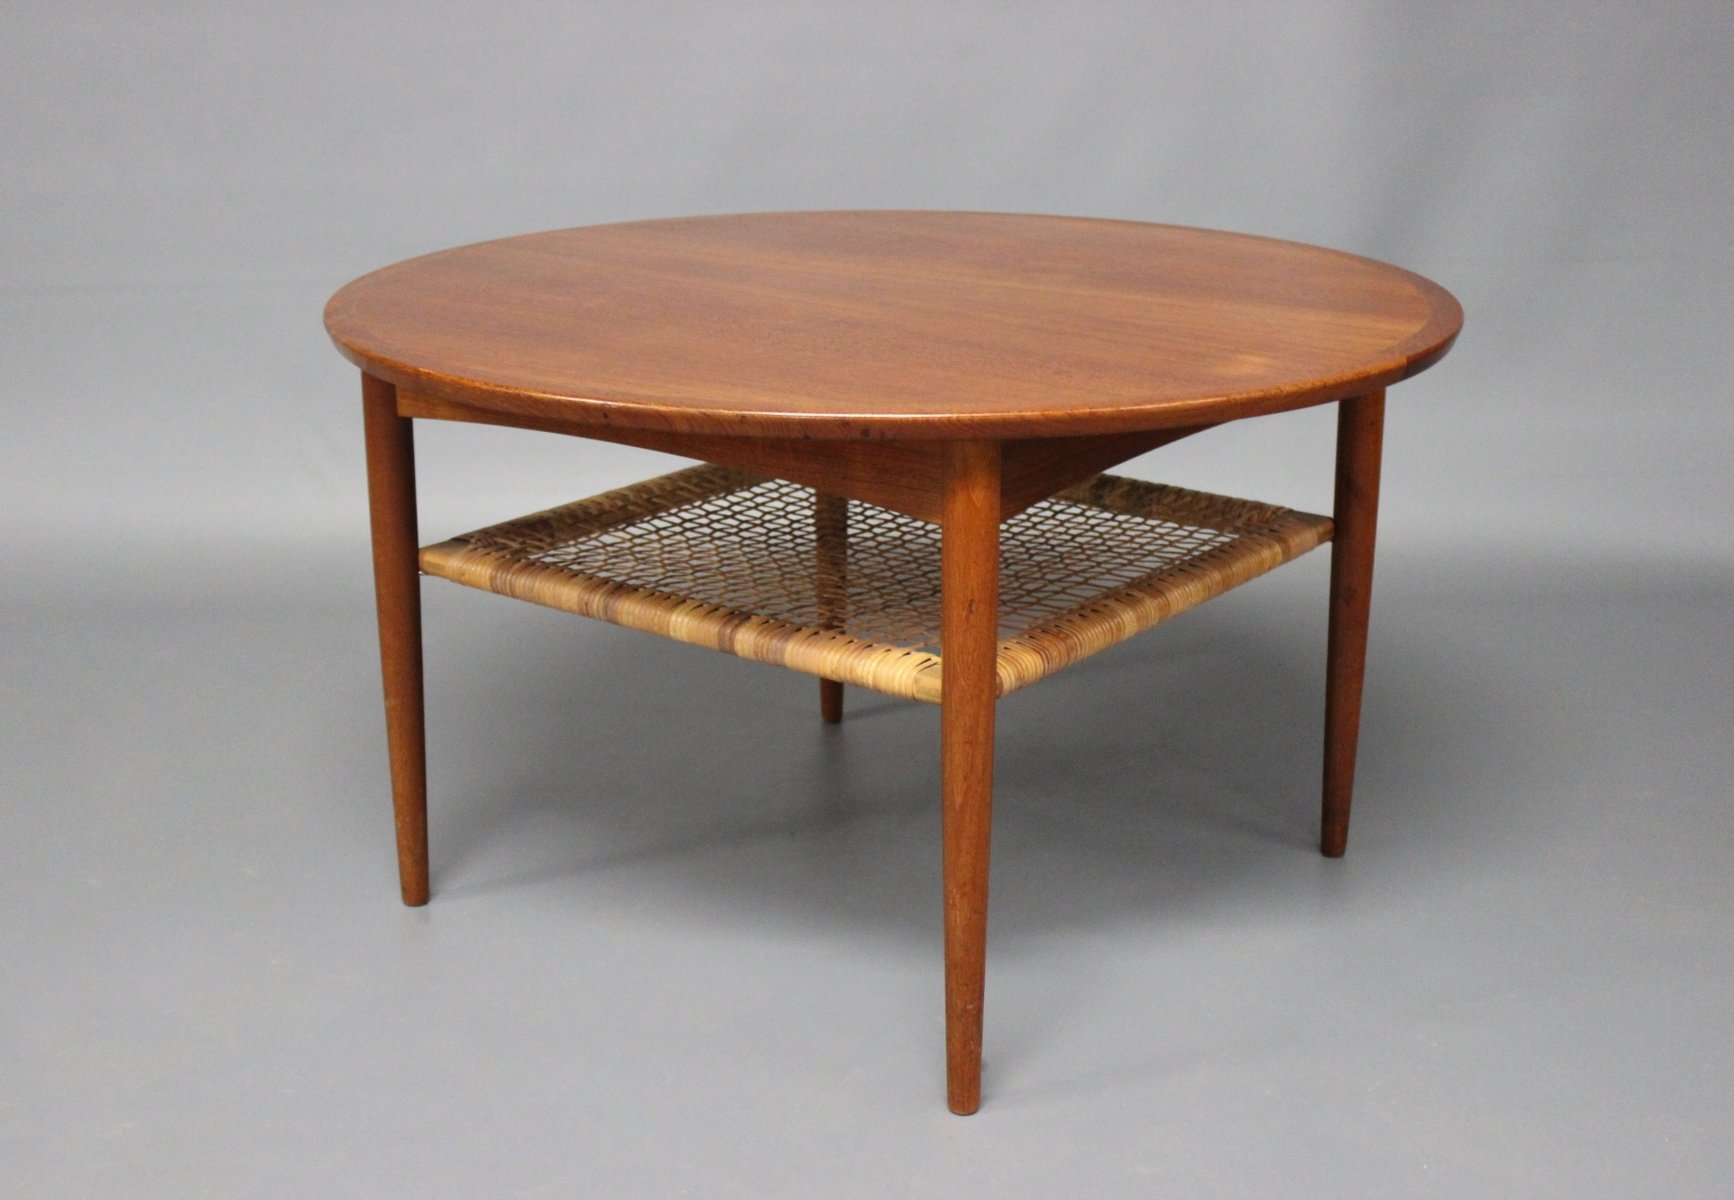 Teak Coffee Table With Cord Shelf From M Belintarsia 1960s For Sale At Pamono